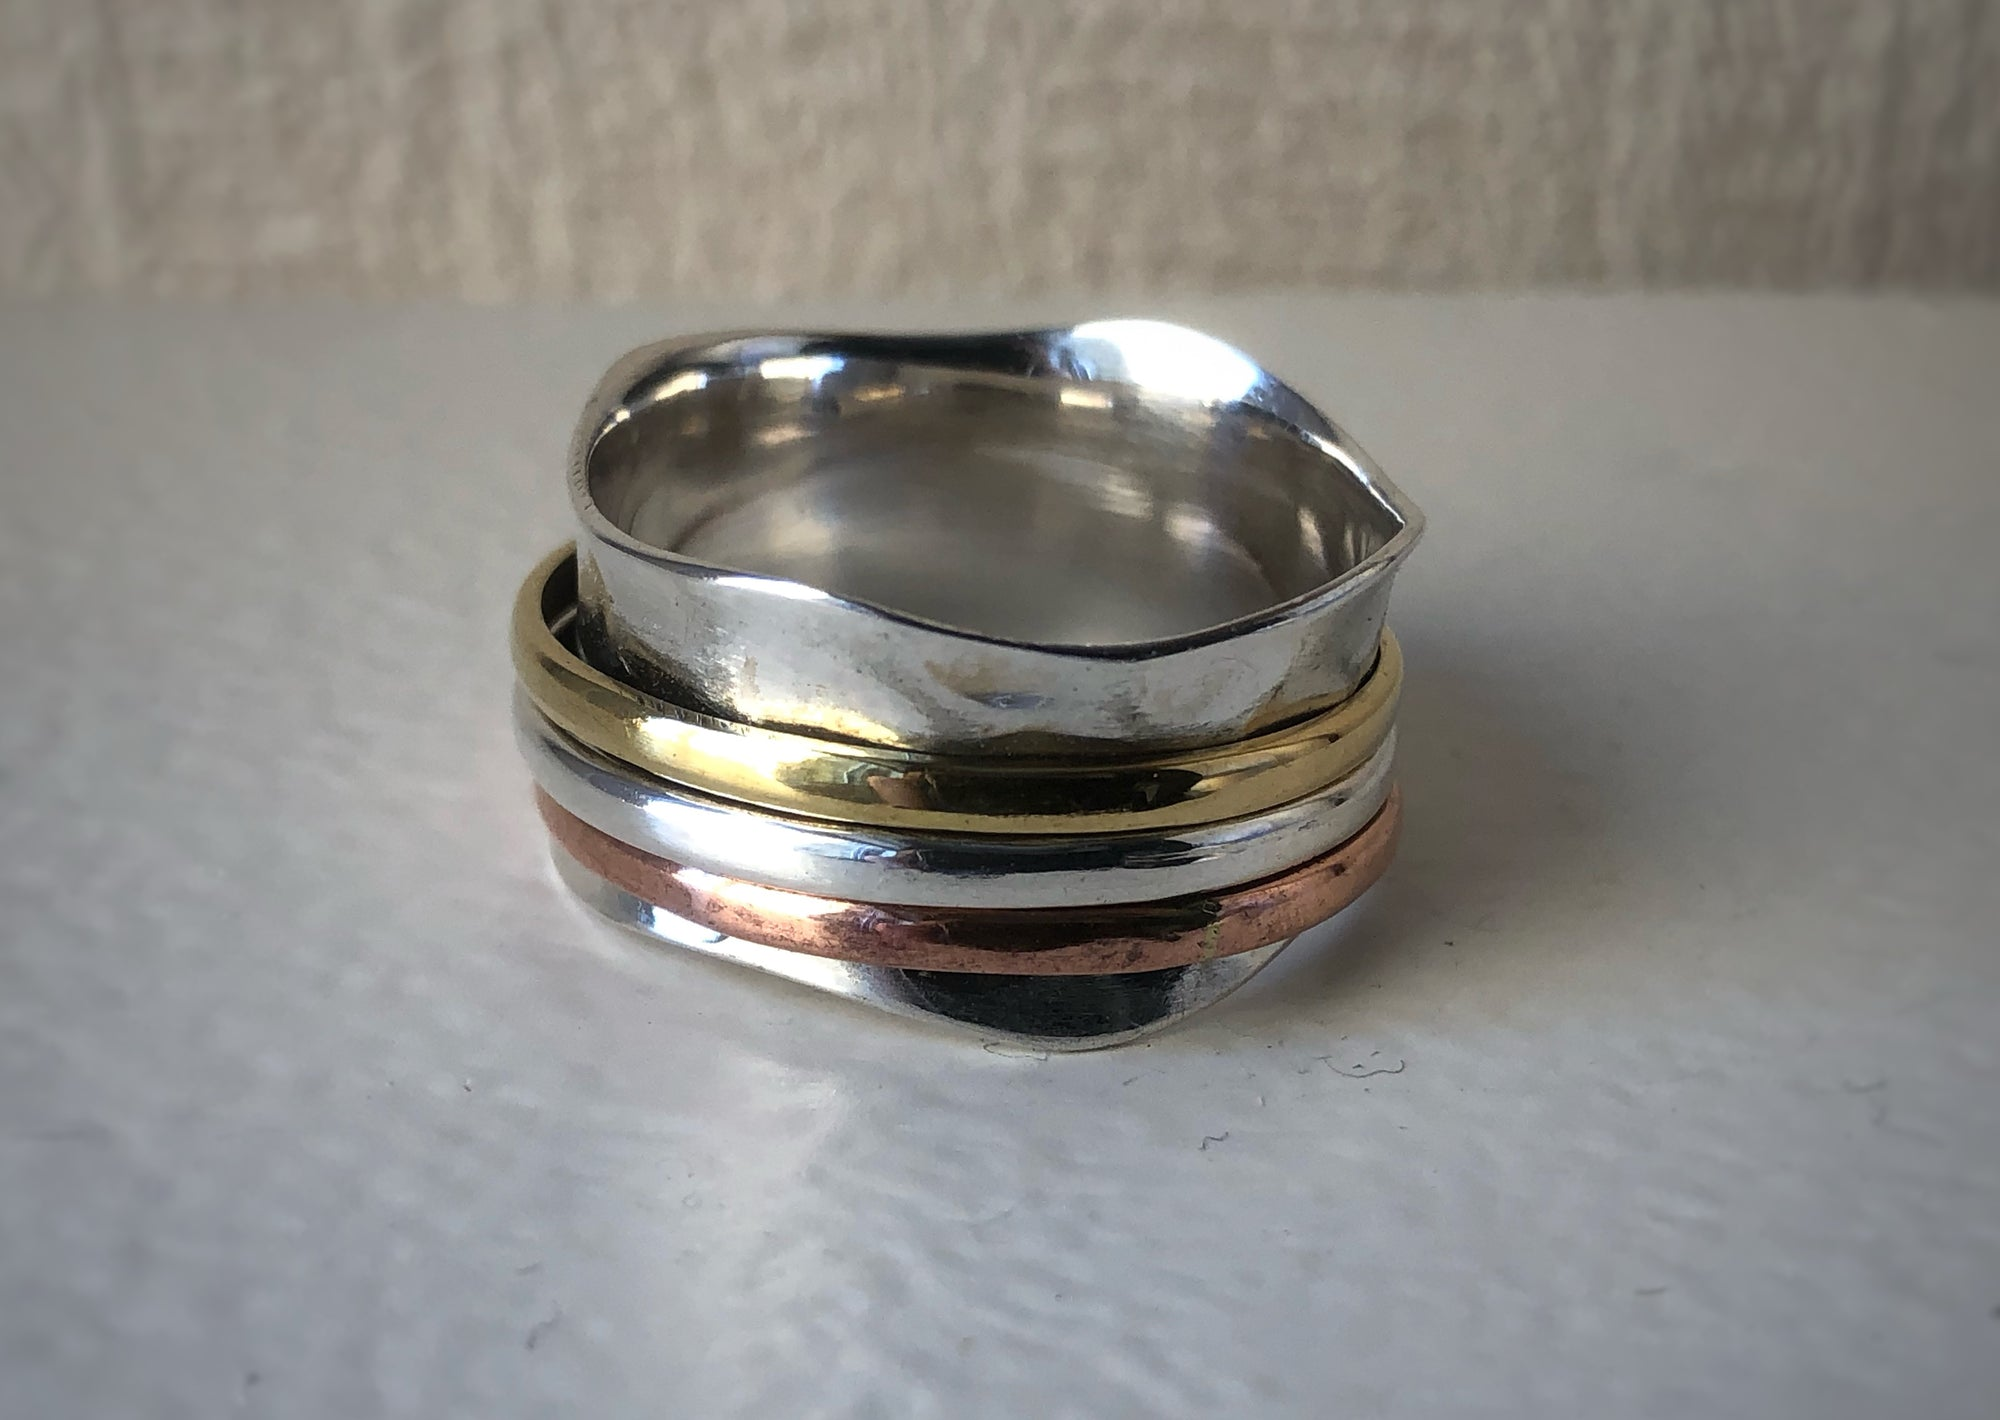 Brass, Copper and Sterling Silver Tri-Color Wave Spinning Ring Tiger Lily London